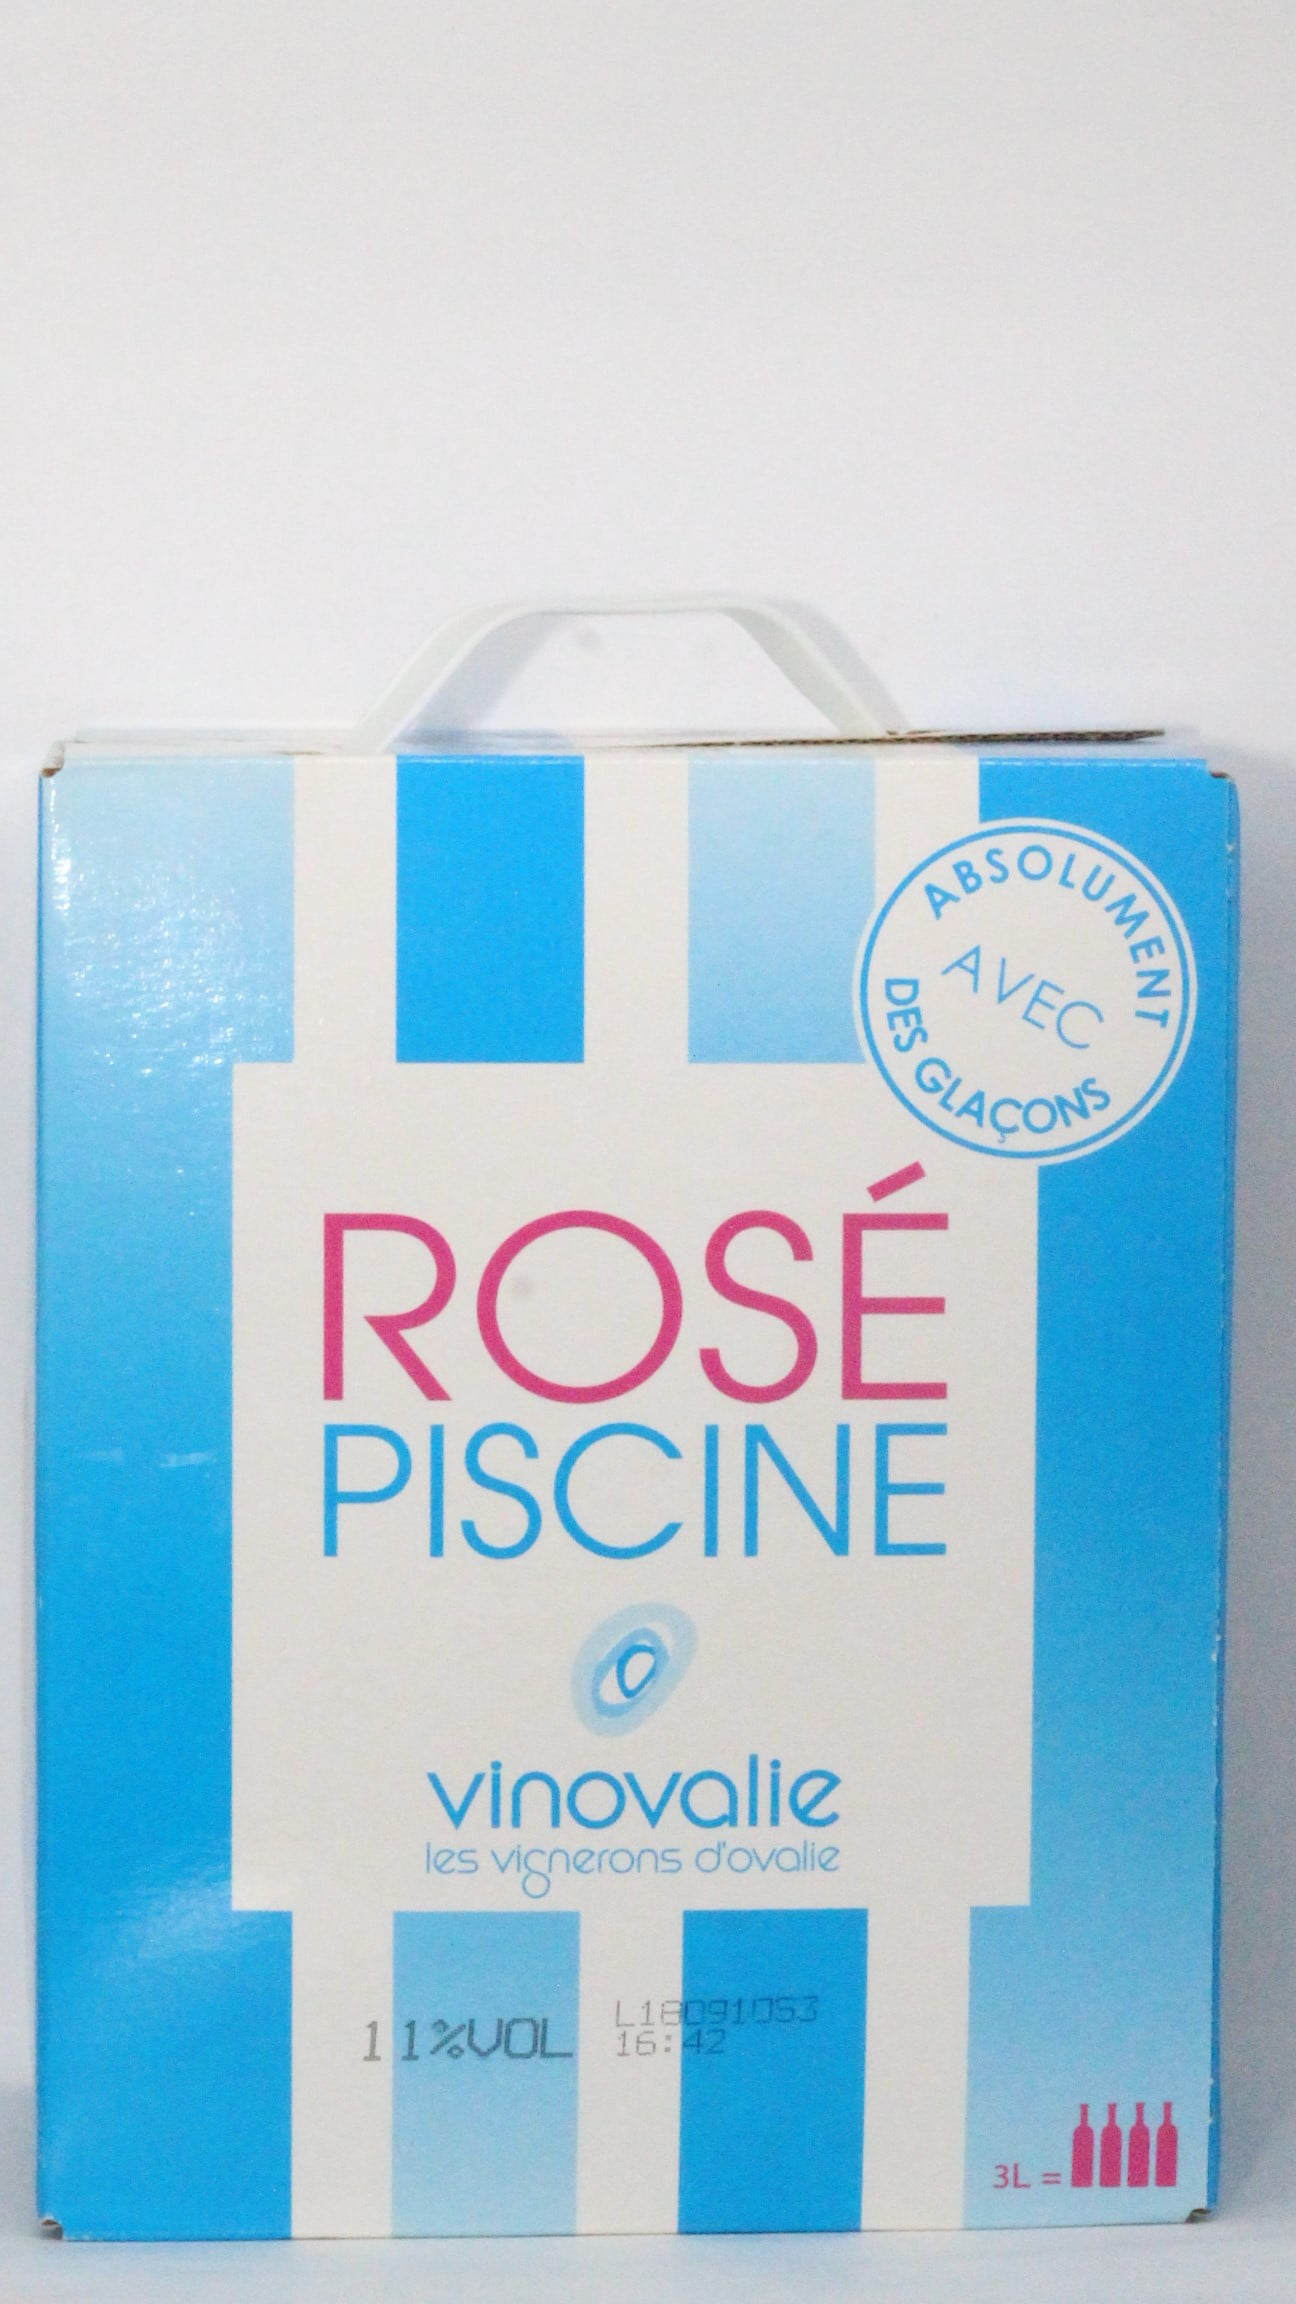 VINHO ROSE PISCINE - WINE IN BOX - 3 LITROS